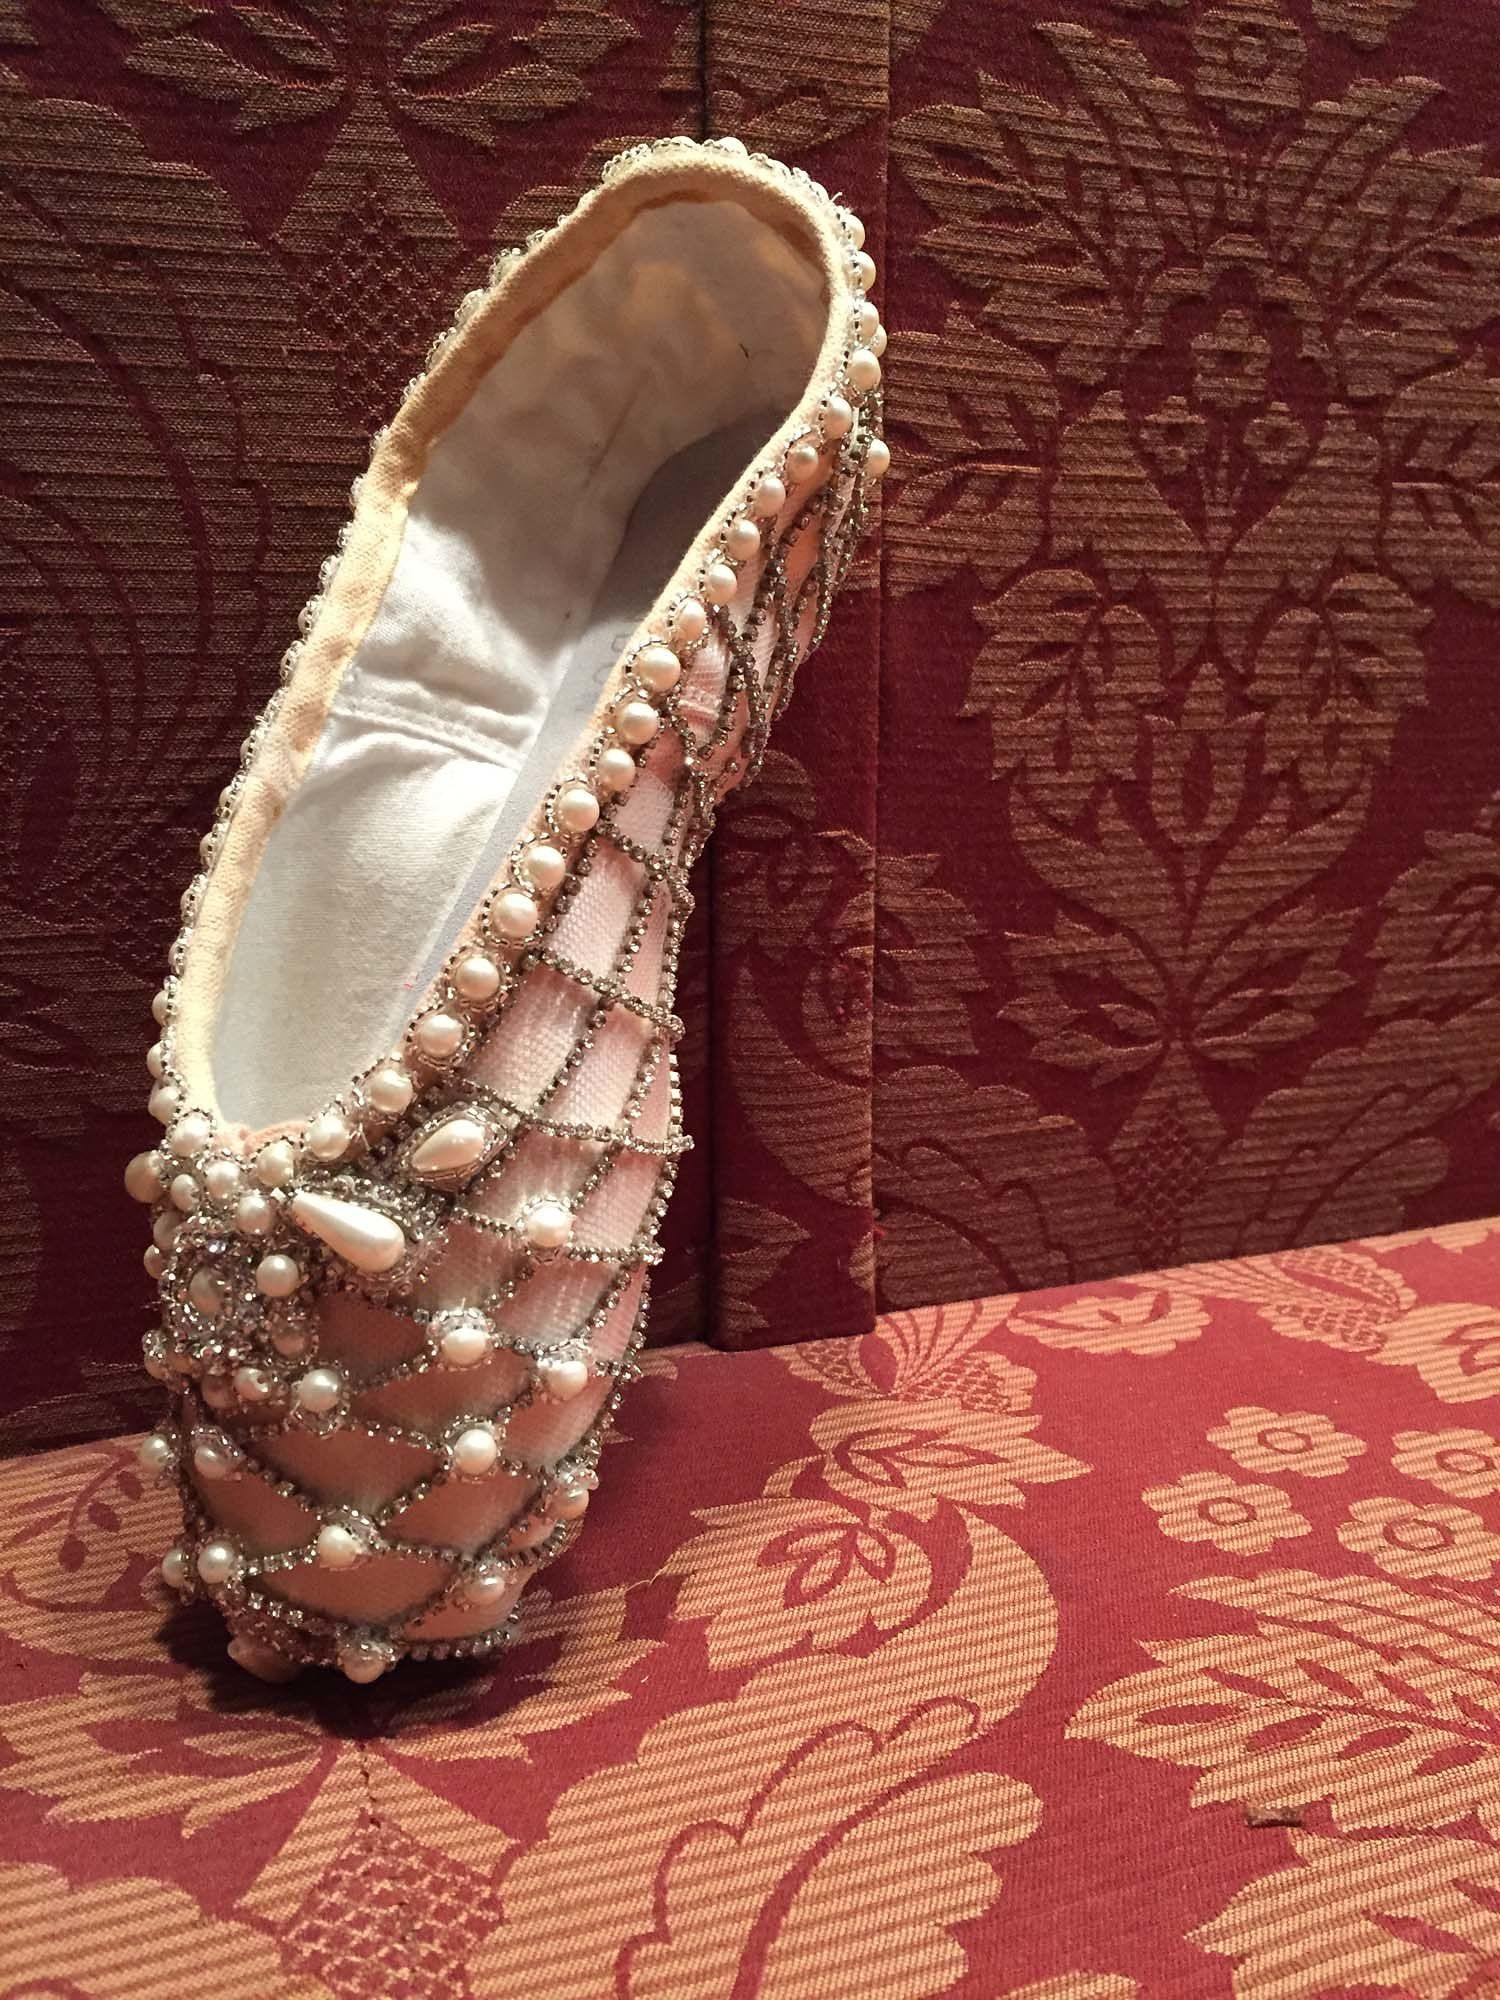 Marchesa For ABT S Th Anniversary Exhibition Curated By Hamish - Abt ballet shoes